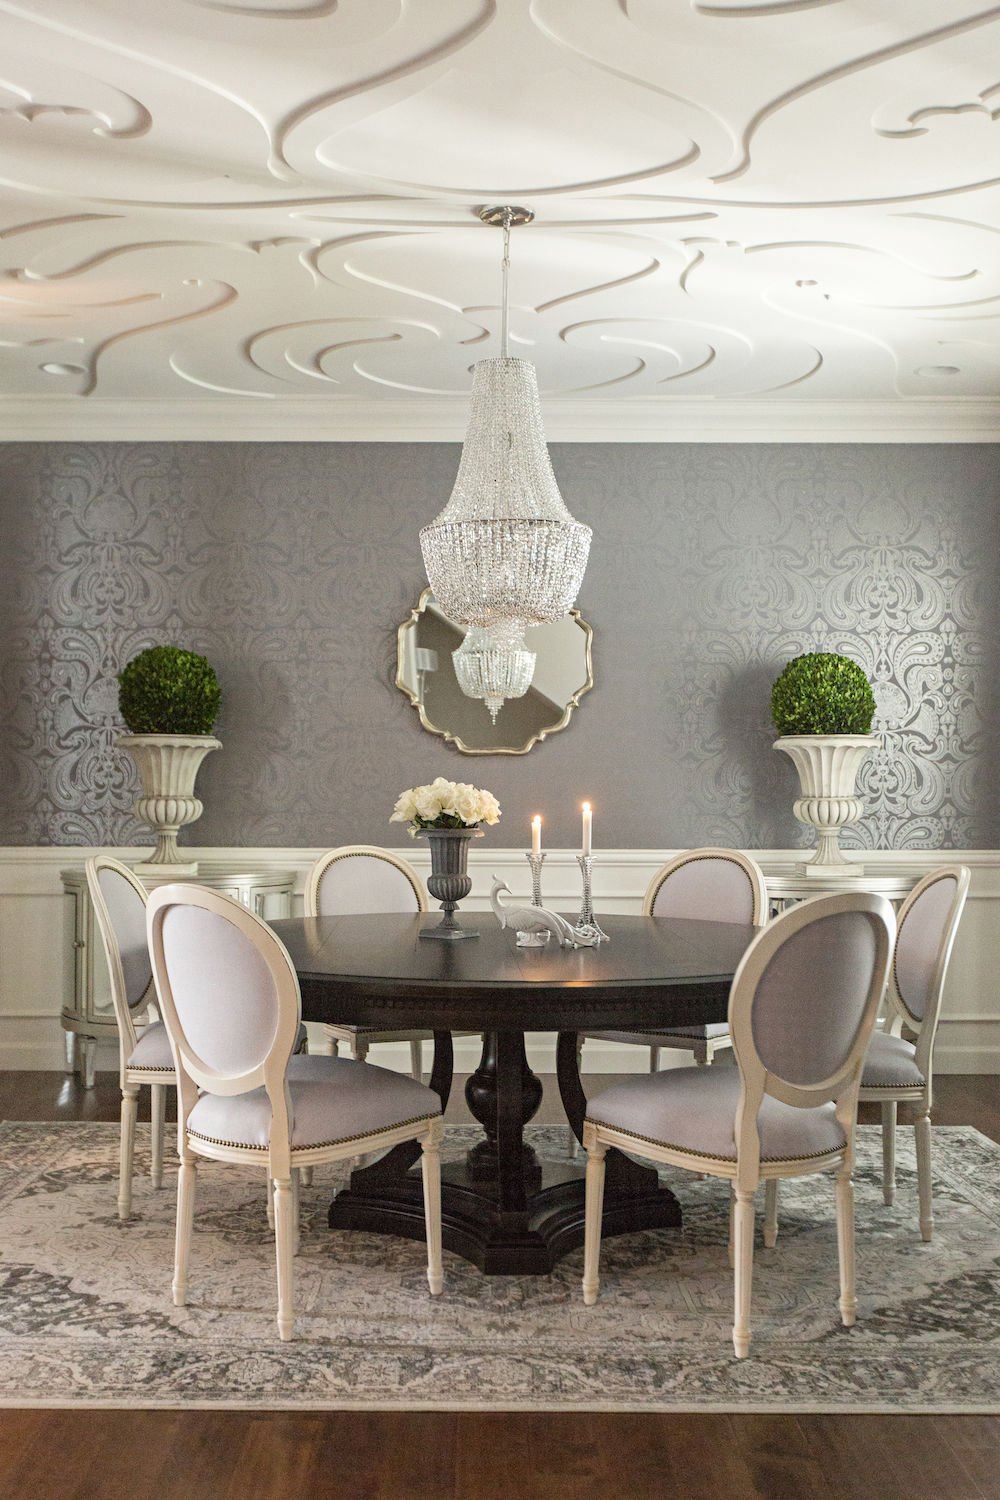 1 Floral ceiling fabrication by Architectural Elements and design by Jessie D. Miller - Photo by Megan Theile.jpg